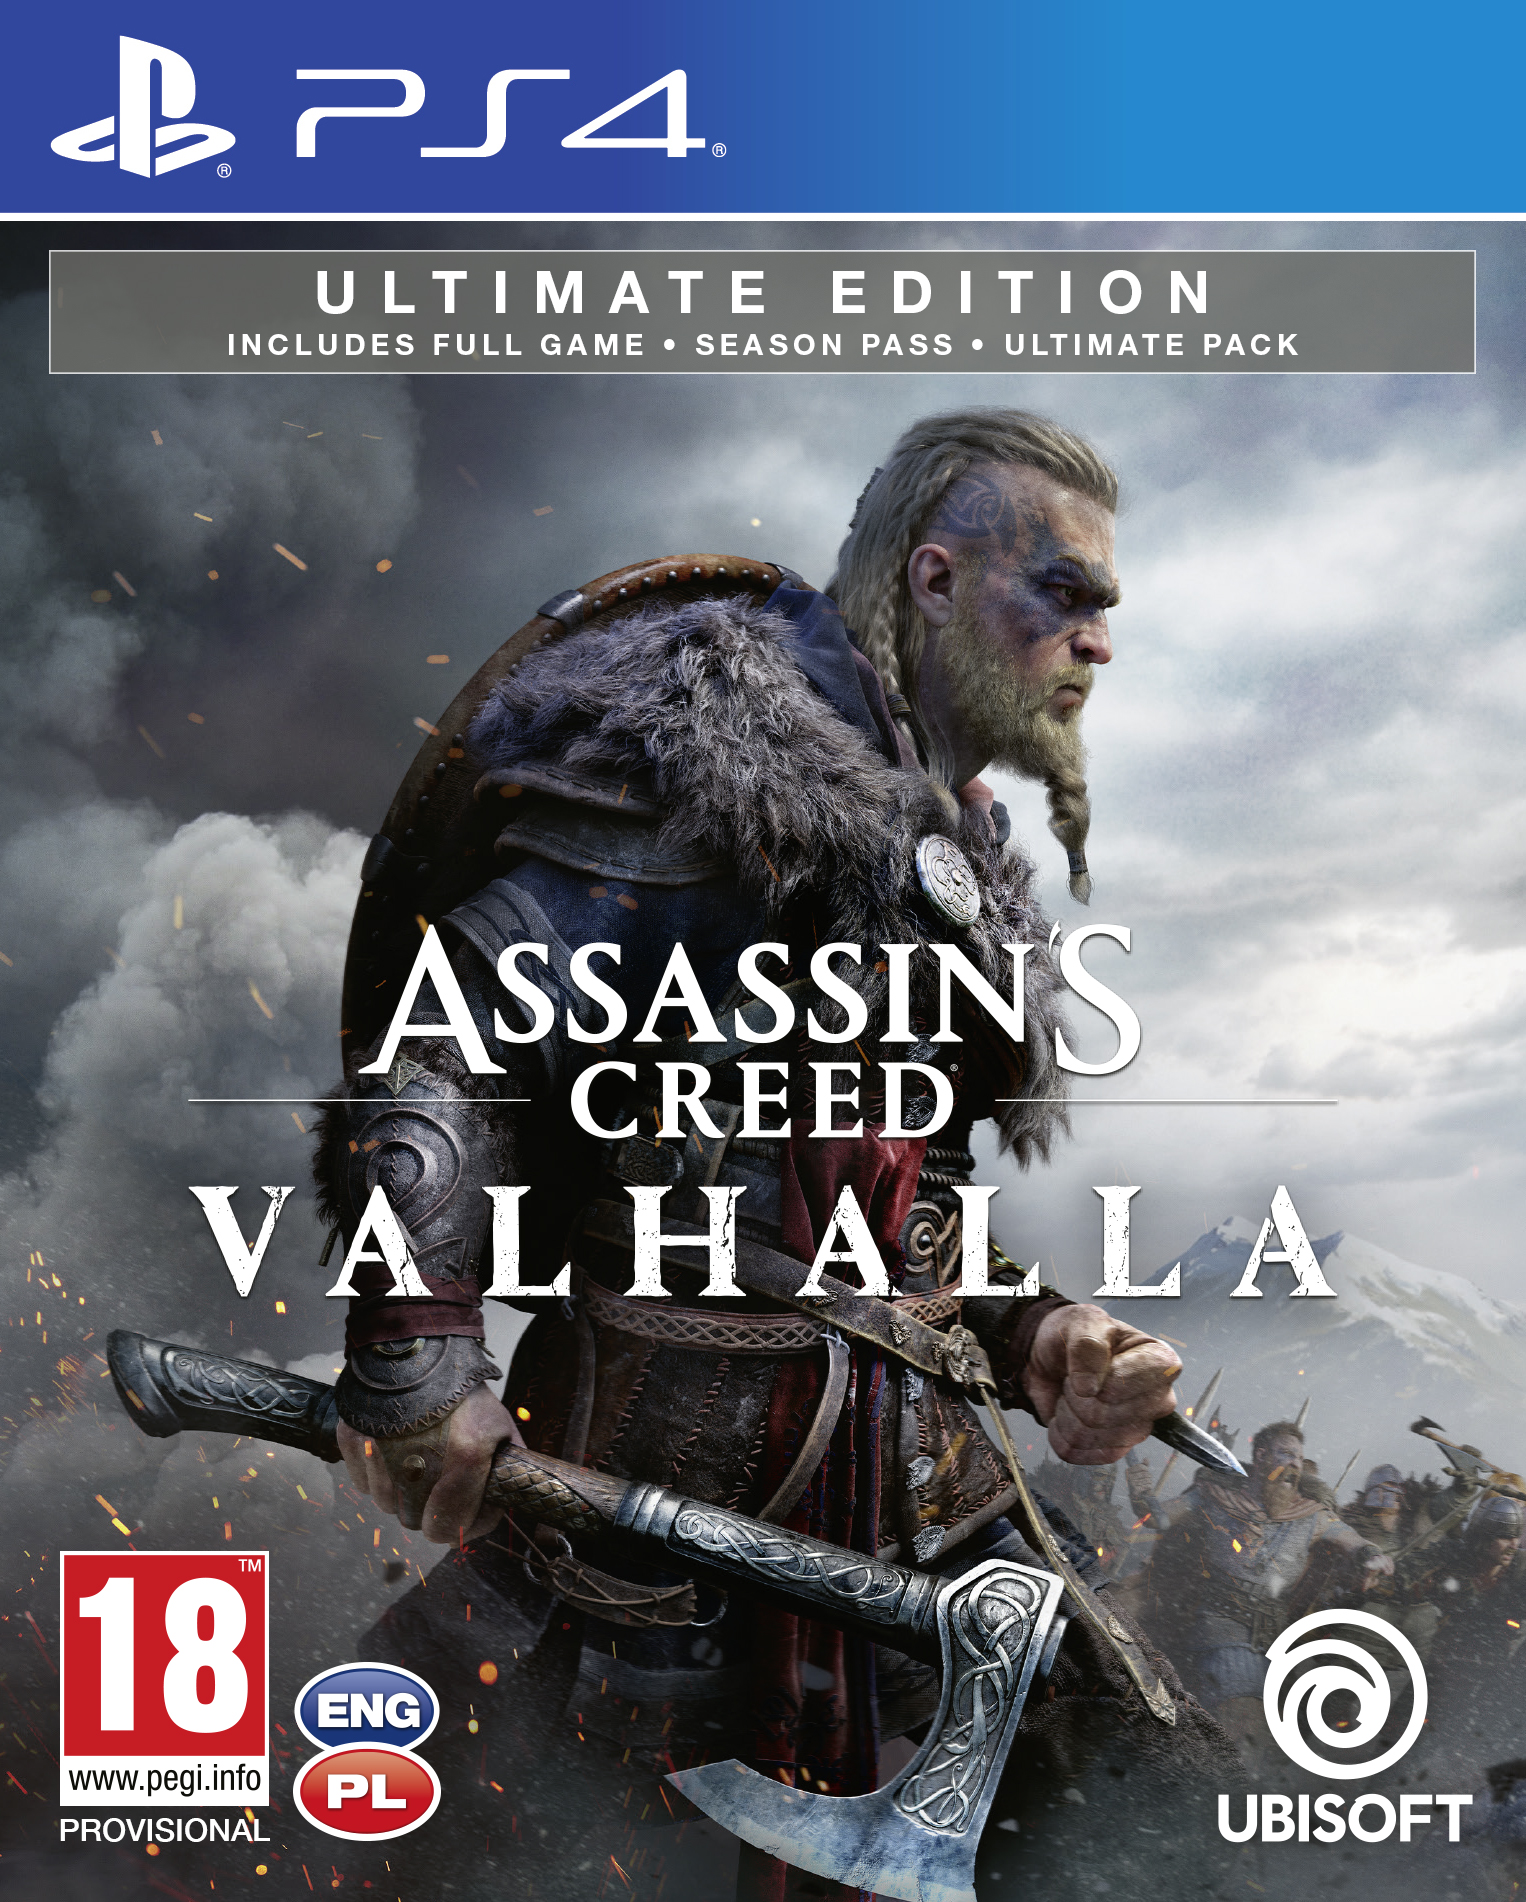 Assassins Creed Valhalla Ultimate Edition - PlayStation 4 Játékok